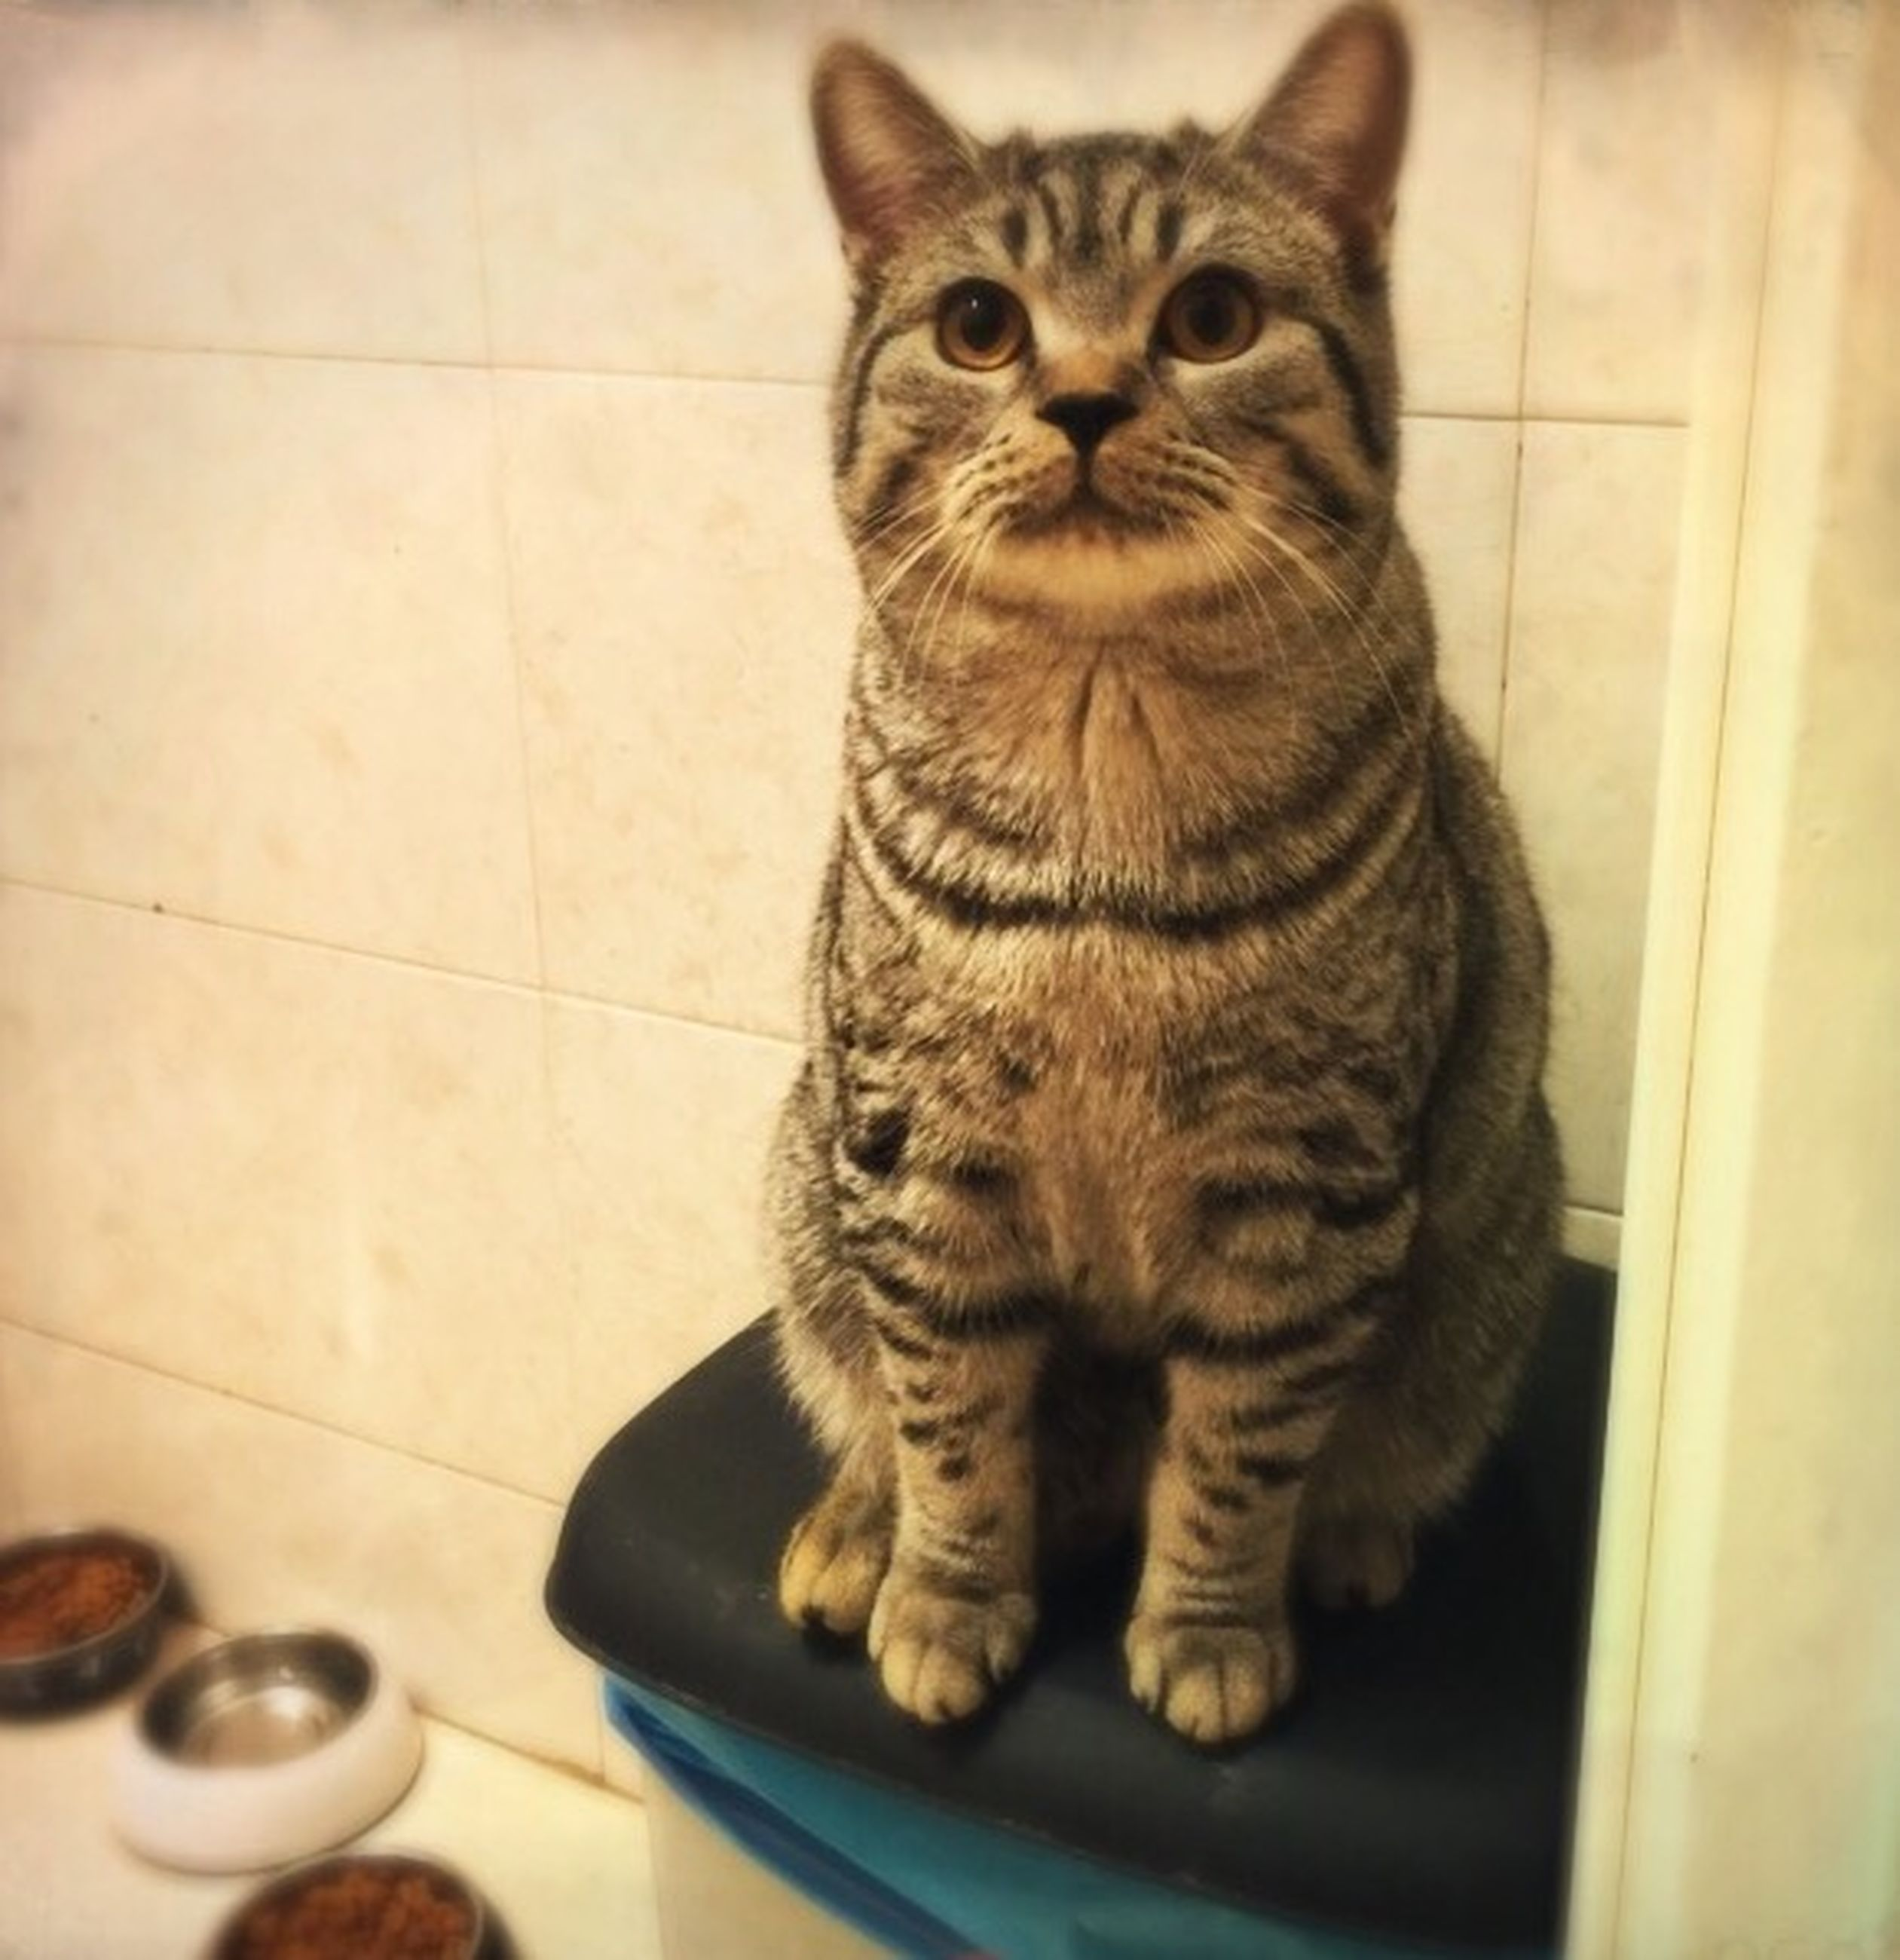 domestic cat, animal themes, cat, pets, one animal, feline, mammal, indoors, domestic animals, whisker, portrait, looking at camera, sitting, relaxation, staring, full length, close-up, high angle view, alertness